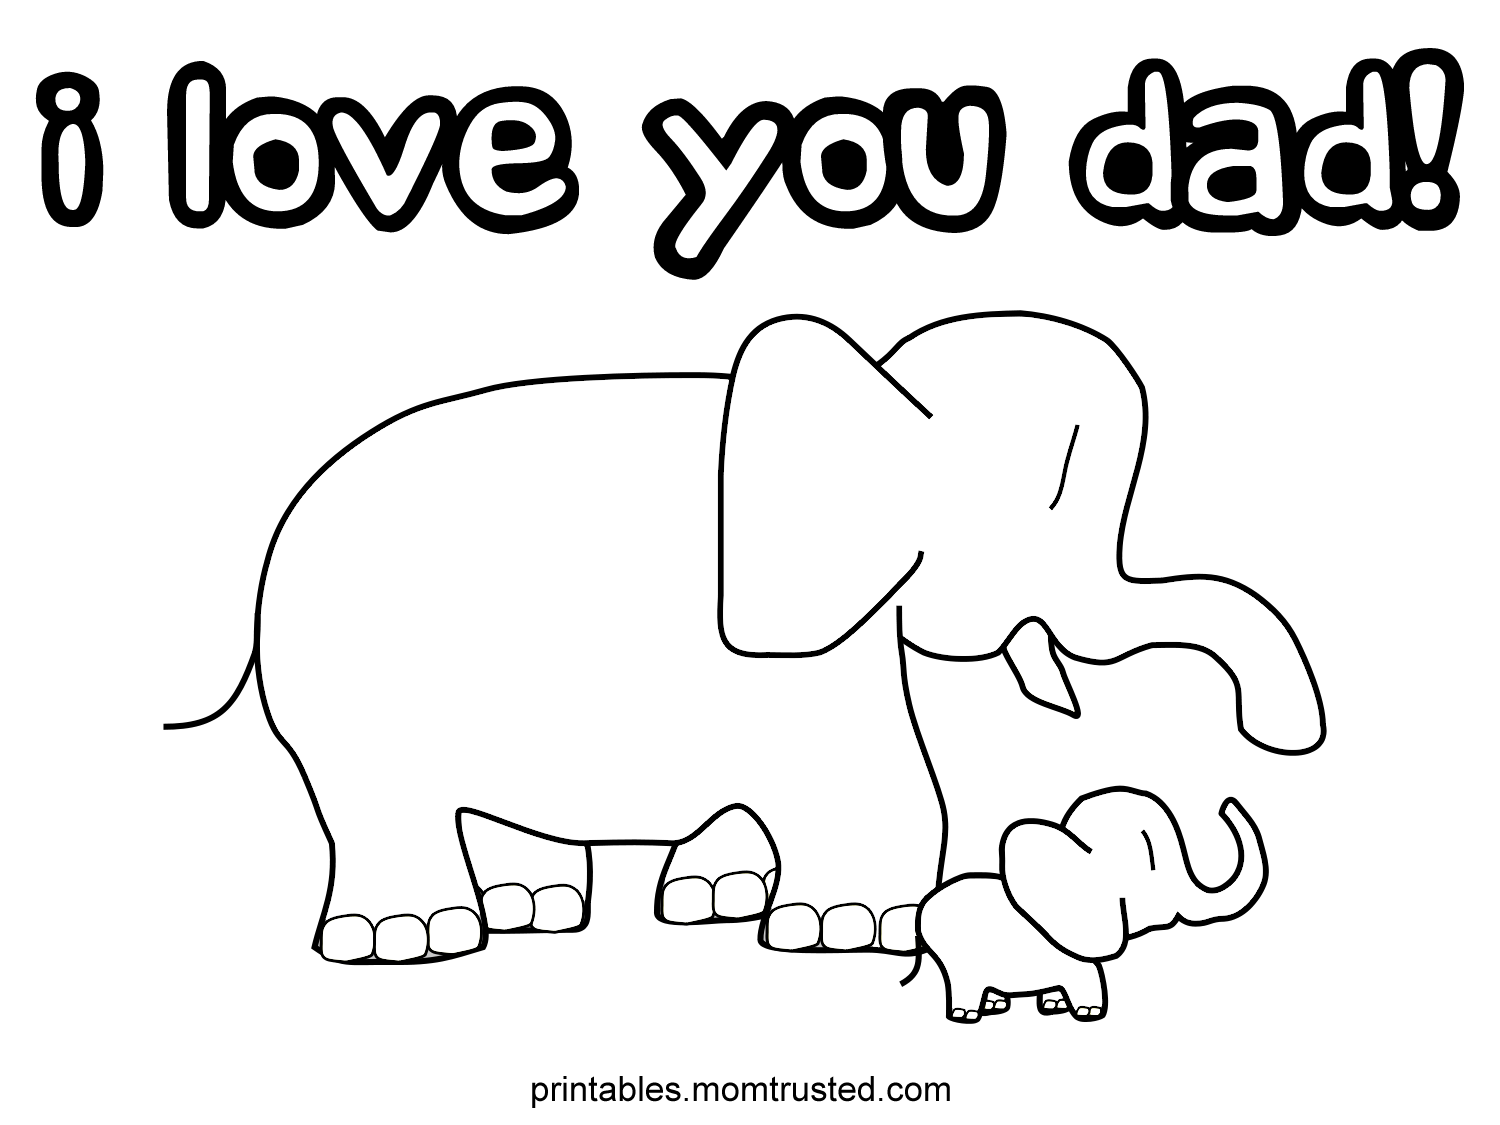 Free coloring pages for june - I Love You Dad Elephants Coloring Page